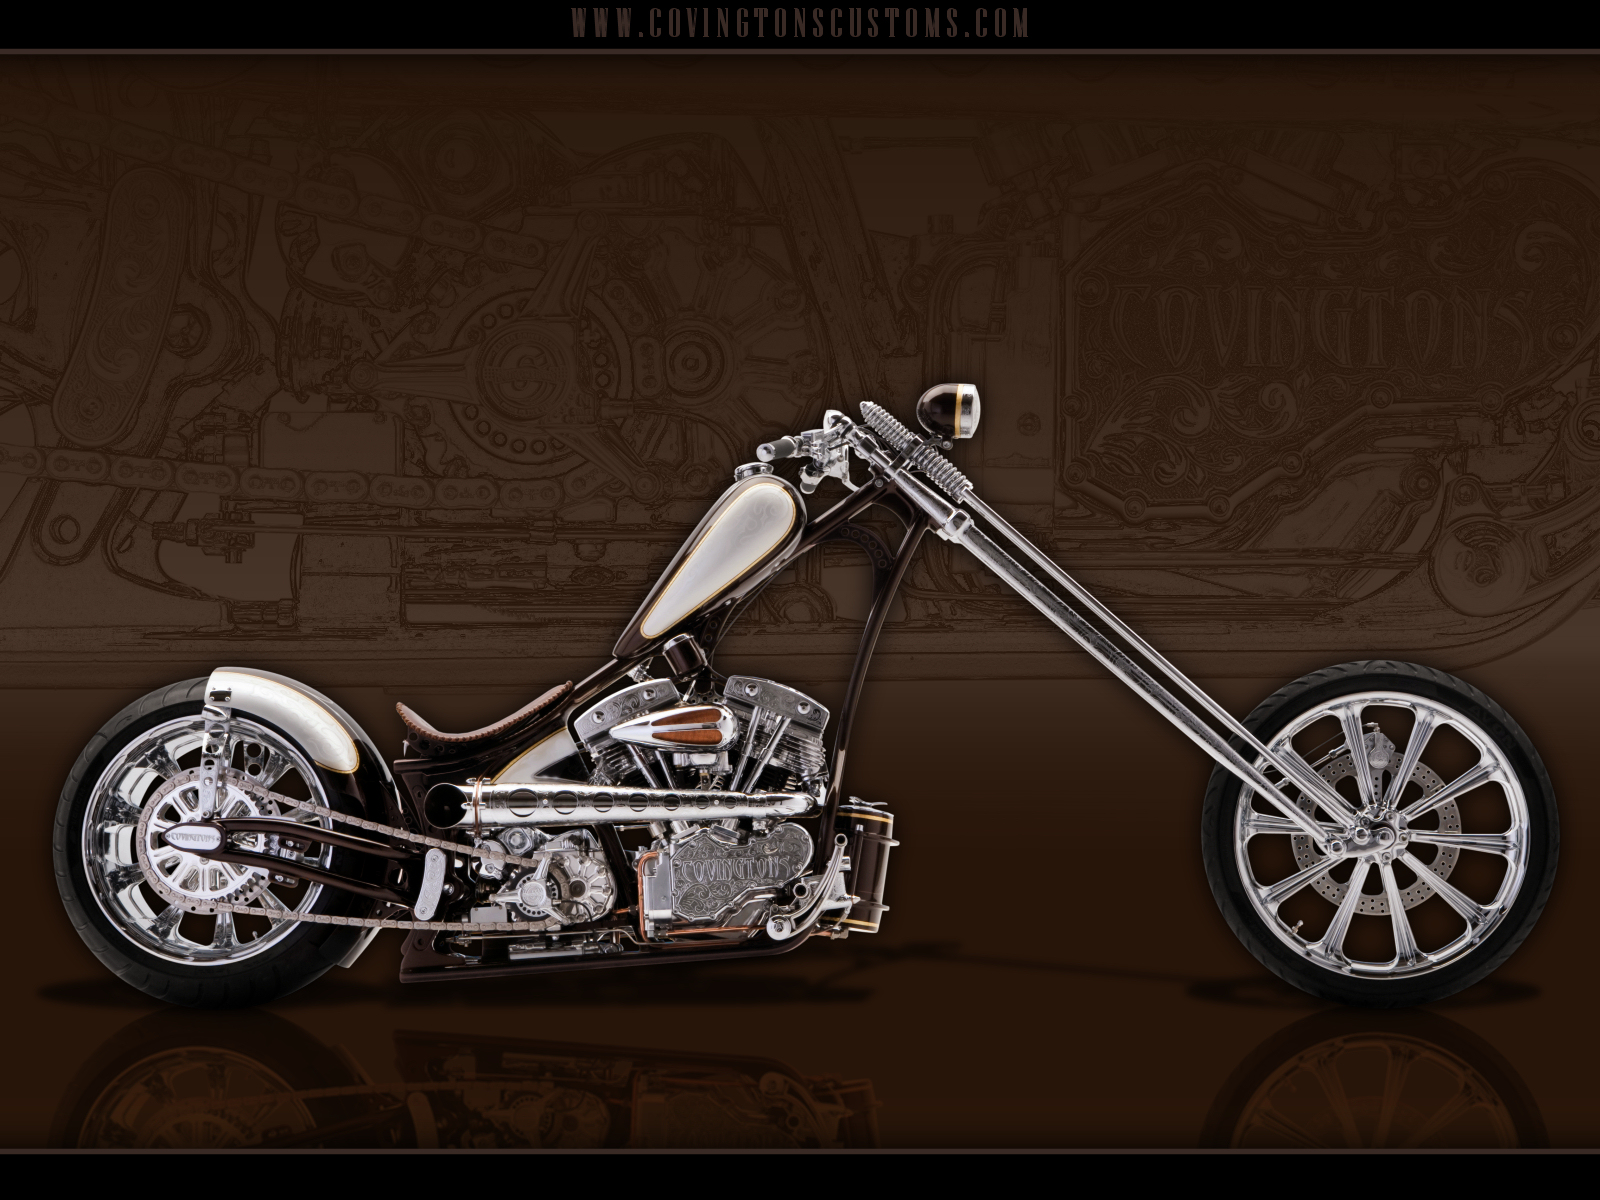 http://4.bp.blogspot.com/-LcLRKjlT5wE/ThR759M4aNI/AAAAAAAAAqI/8uld6R5hDJM/s1600/Covingtons-Custom-Motorcycle-Wallpaper-bg40.jpg